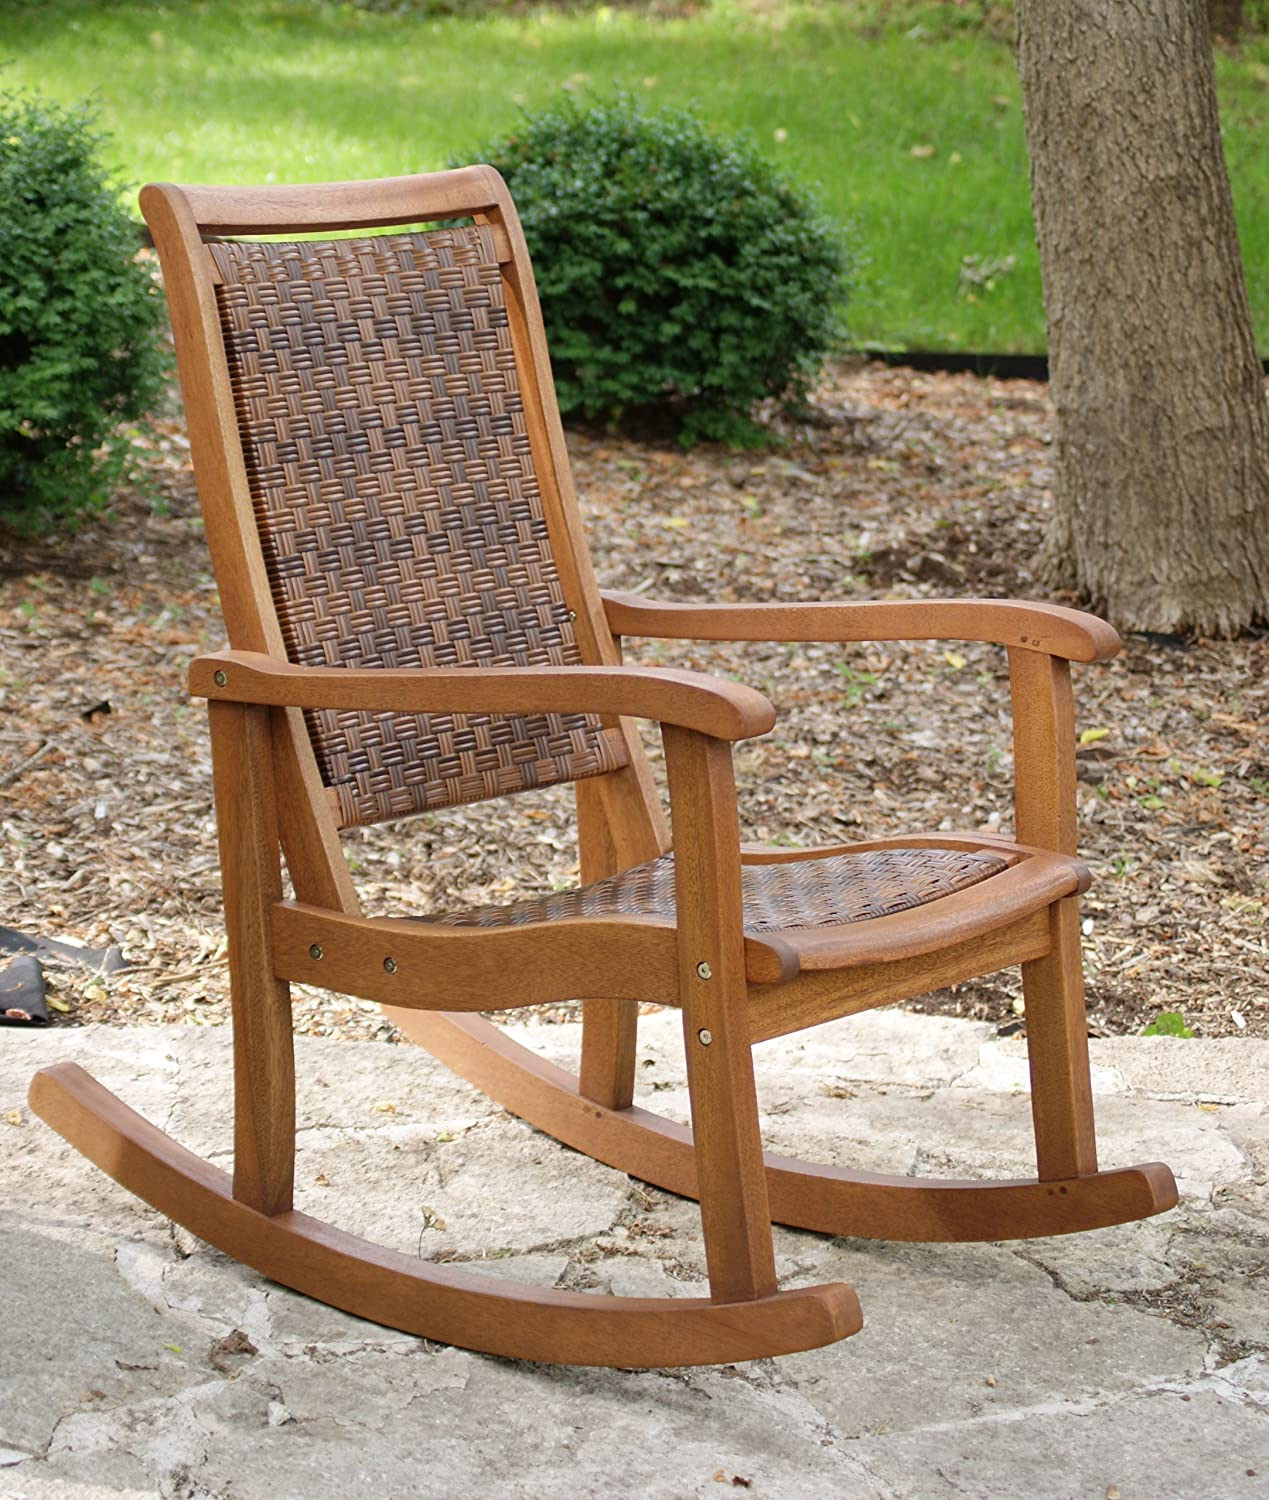 amber outdoor lowes rocking southwest portside pin tortuga chair wicker